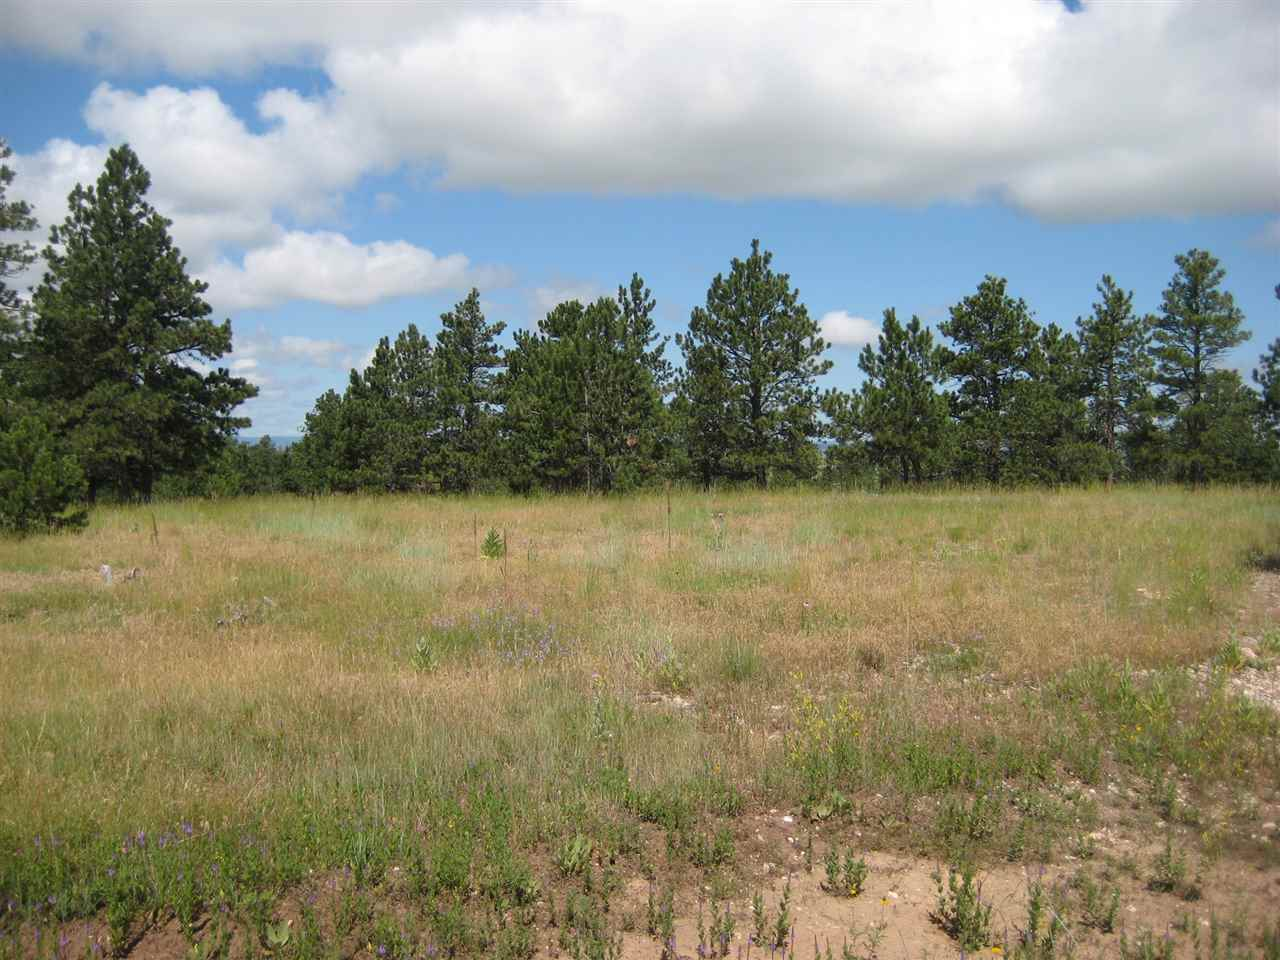 Lot 13, Block 1 Merriam Loop